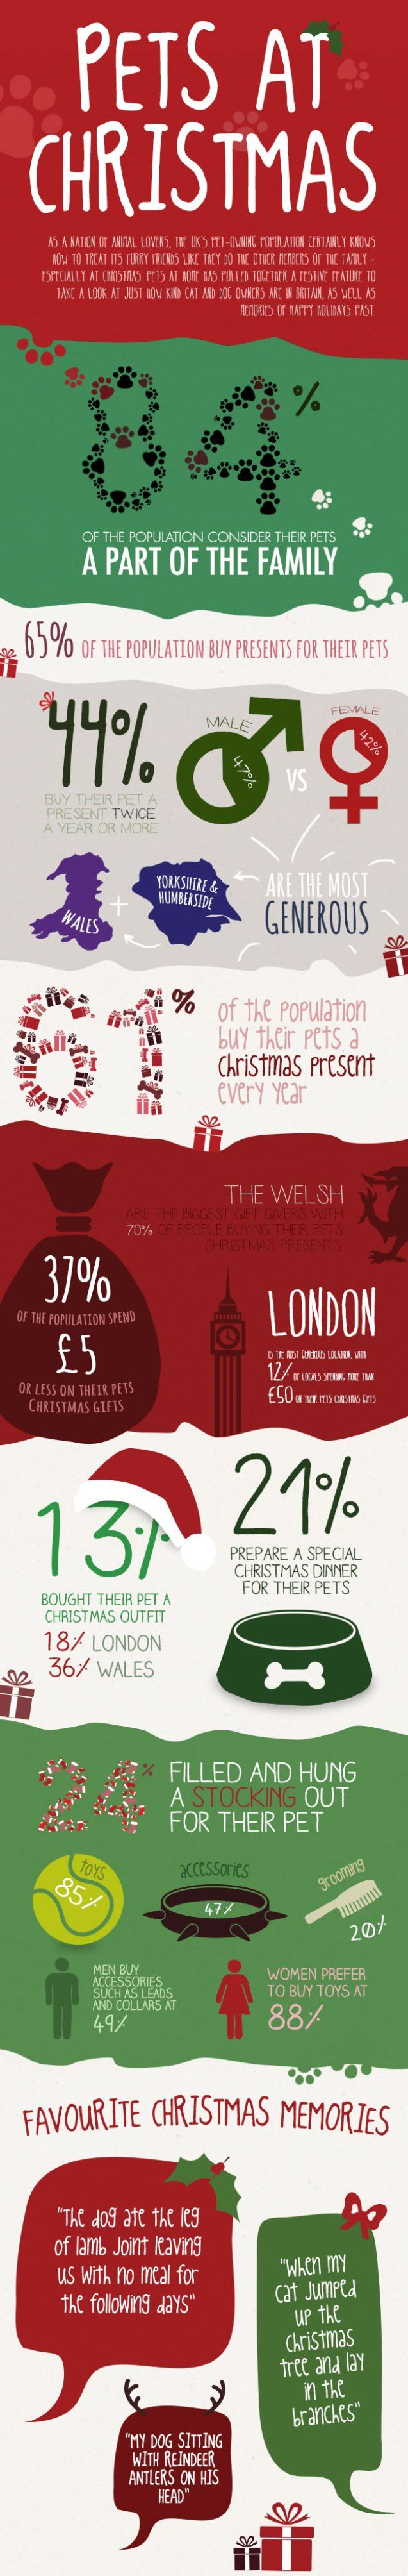 pets at christmas infographic 1